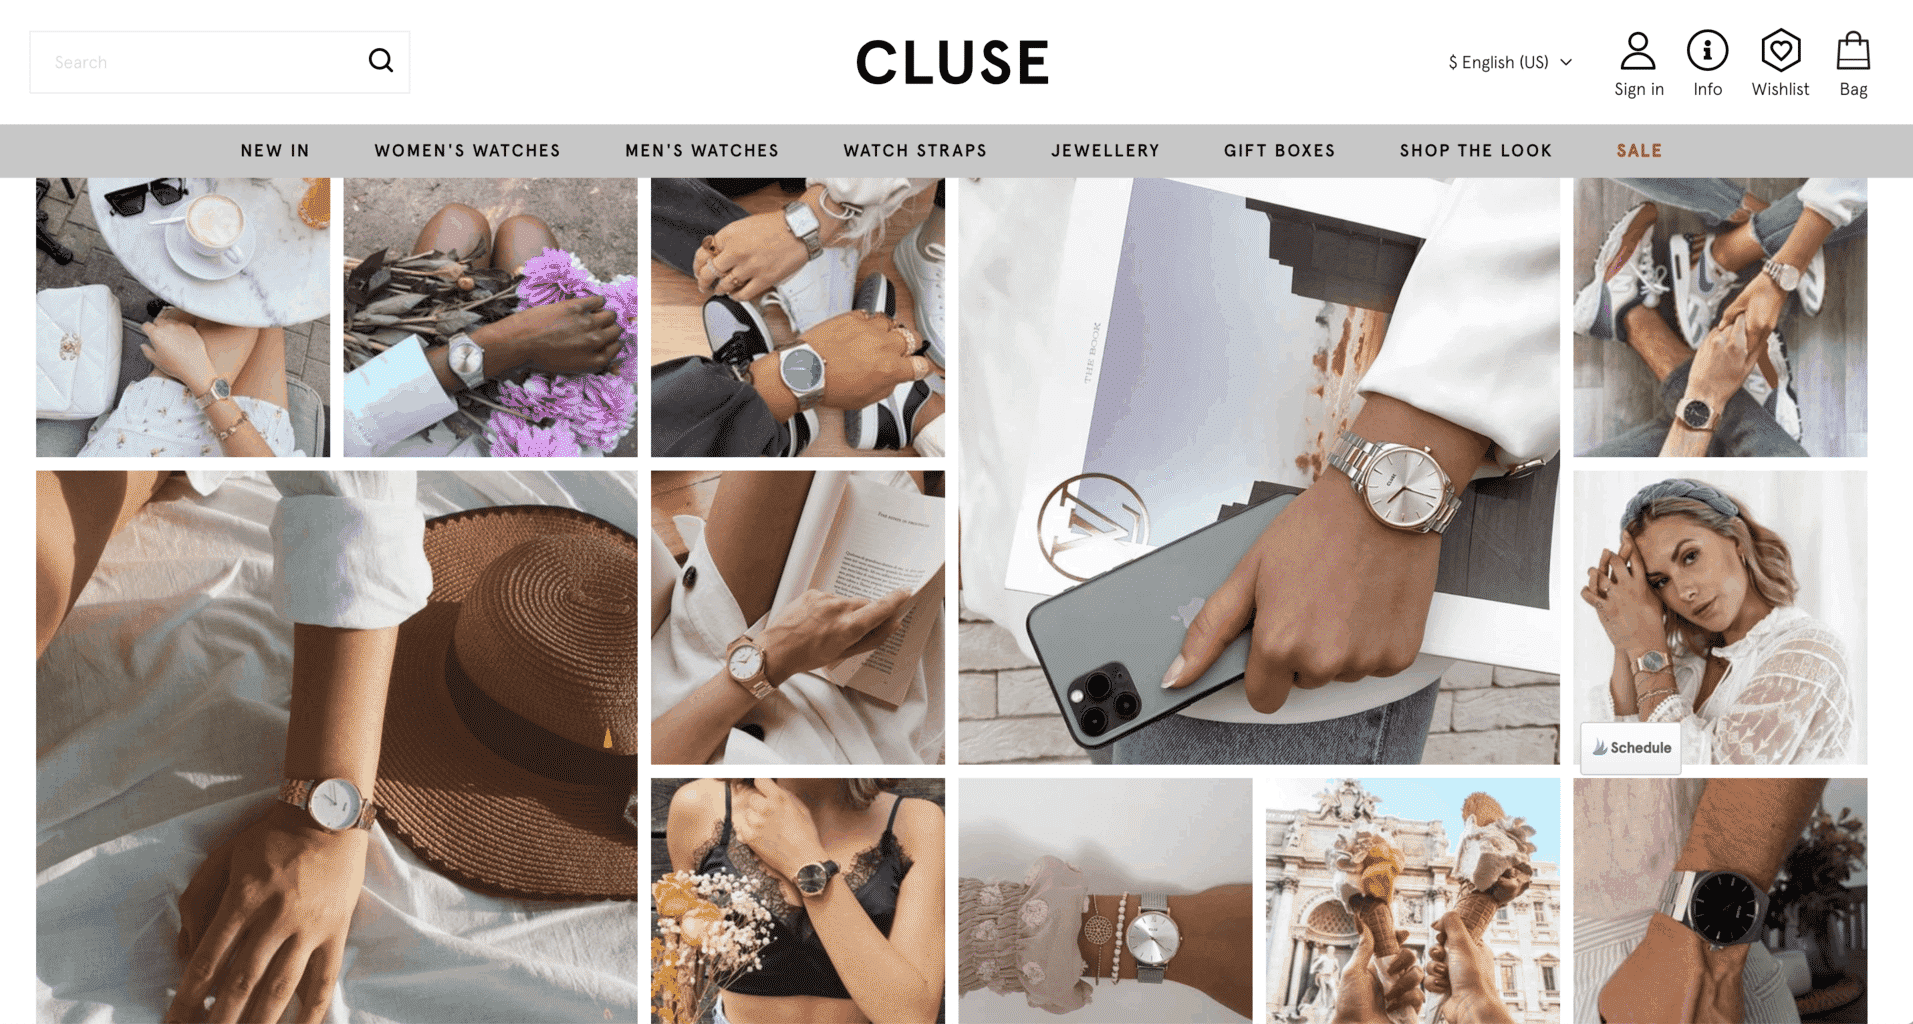 Cluse watch user generated content UGC 6X influencer marketing case study